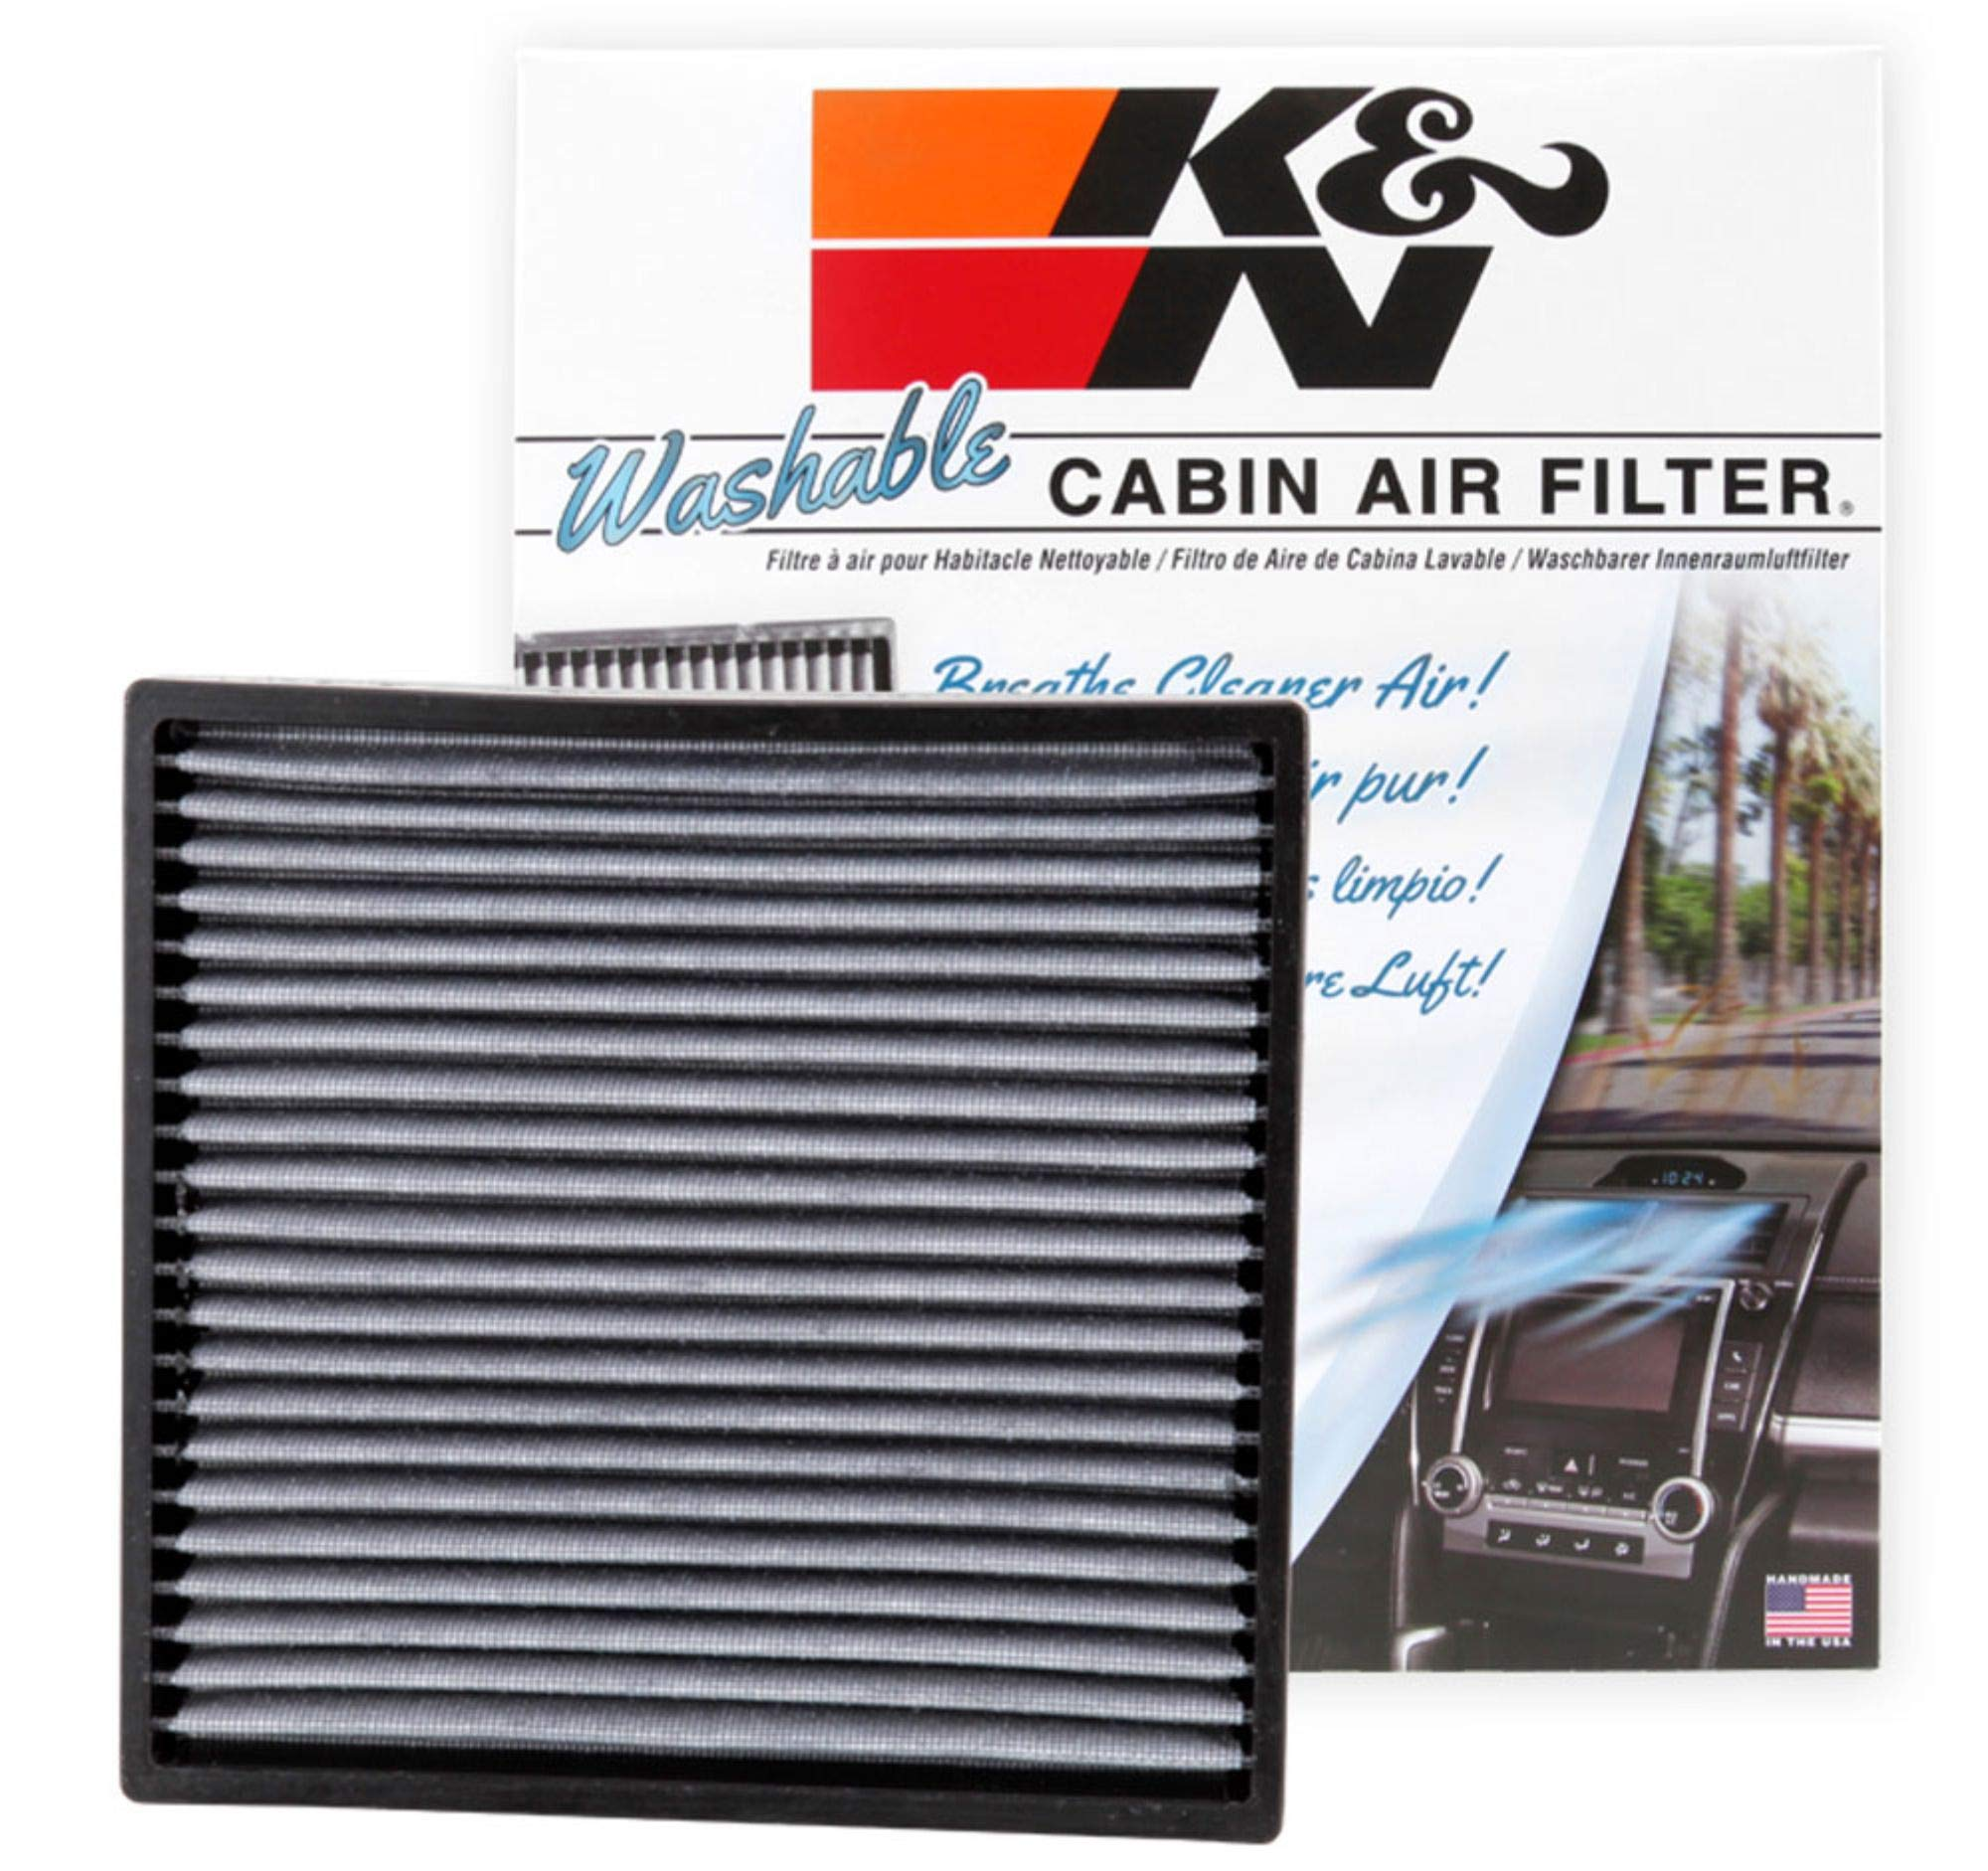 K&N VF2001 Washable & Reusable Cabin Air Filter Cleans and Freshens Incoming Air for your Acura, Honda by K&N